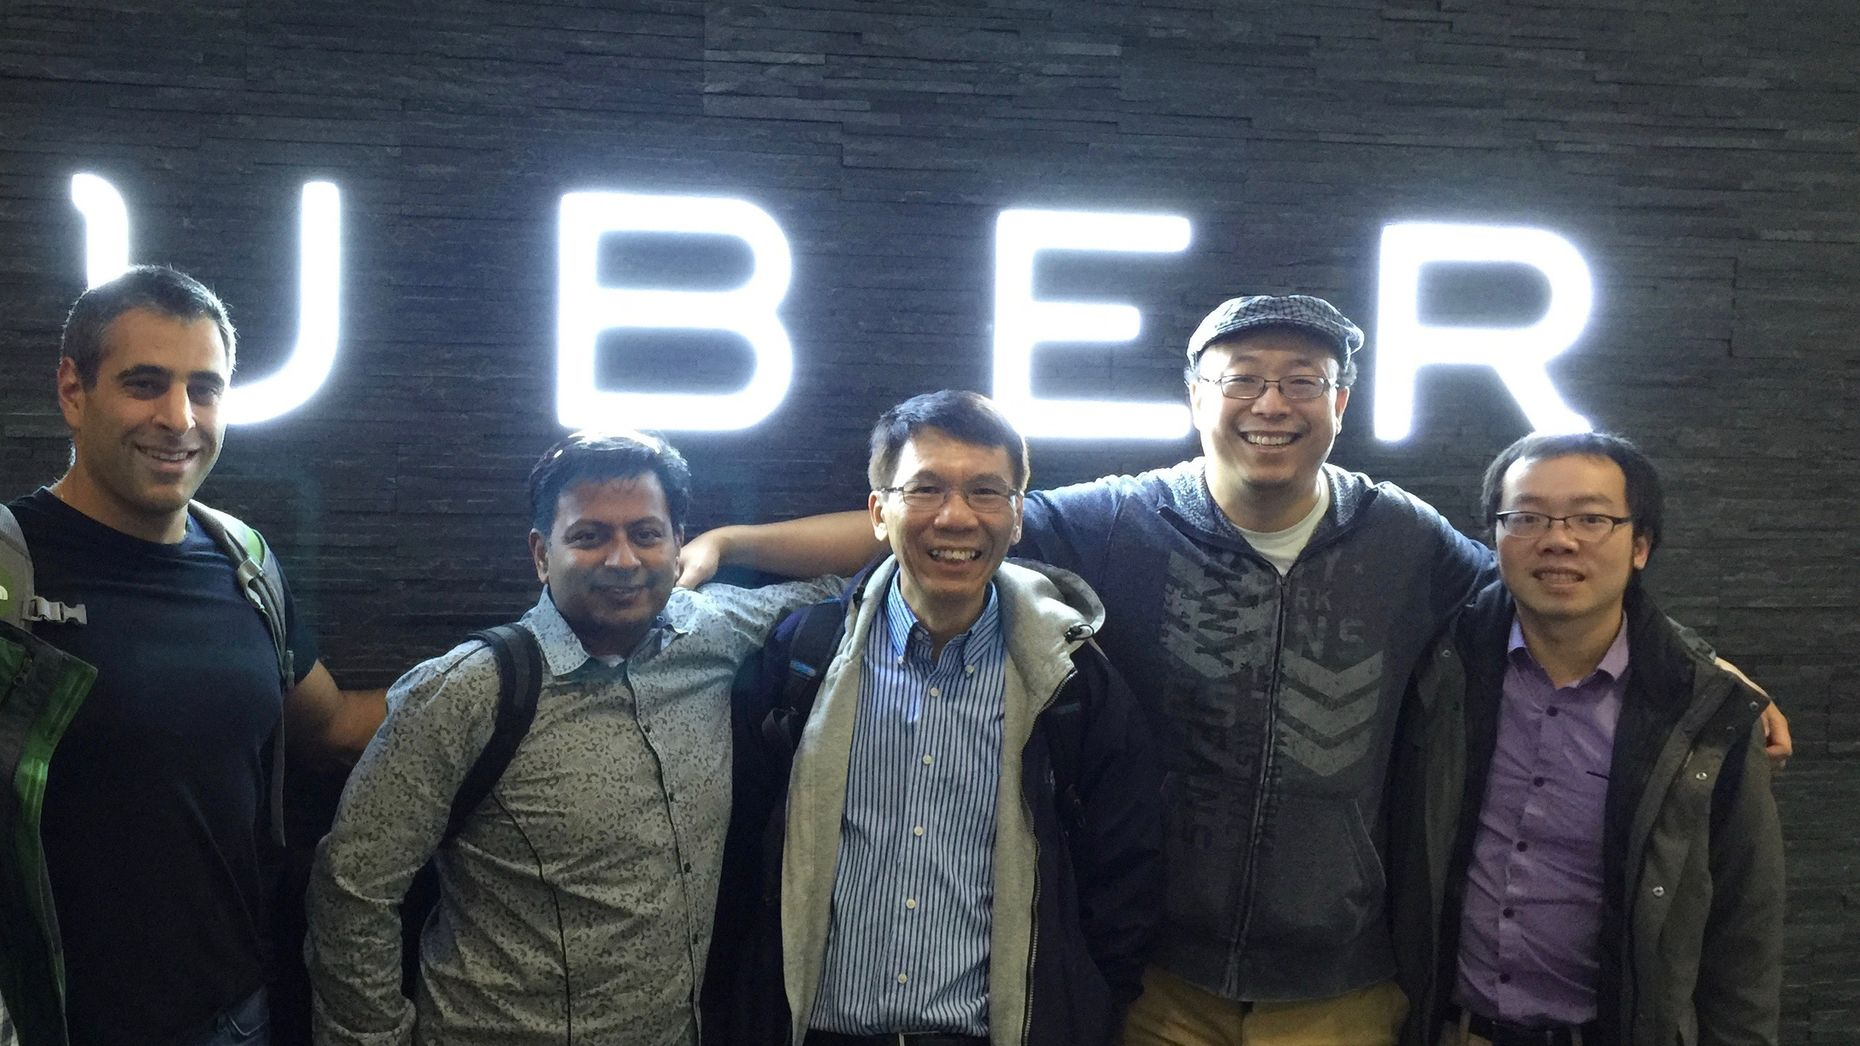 Uber's Chief Technology Officer Thuan Pham, center, with fellow engineers.